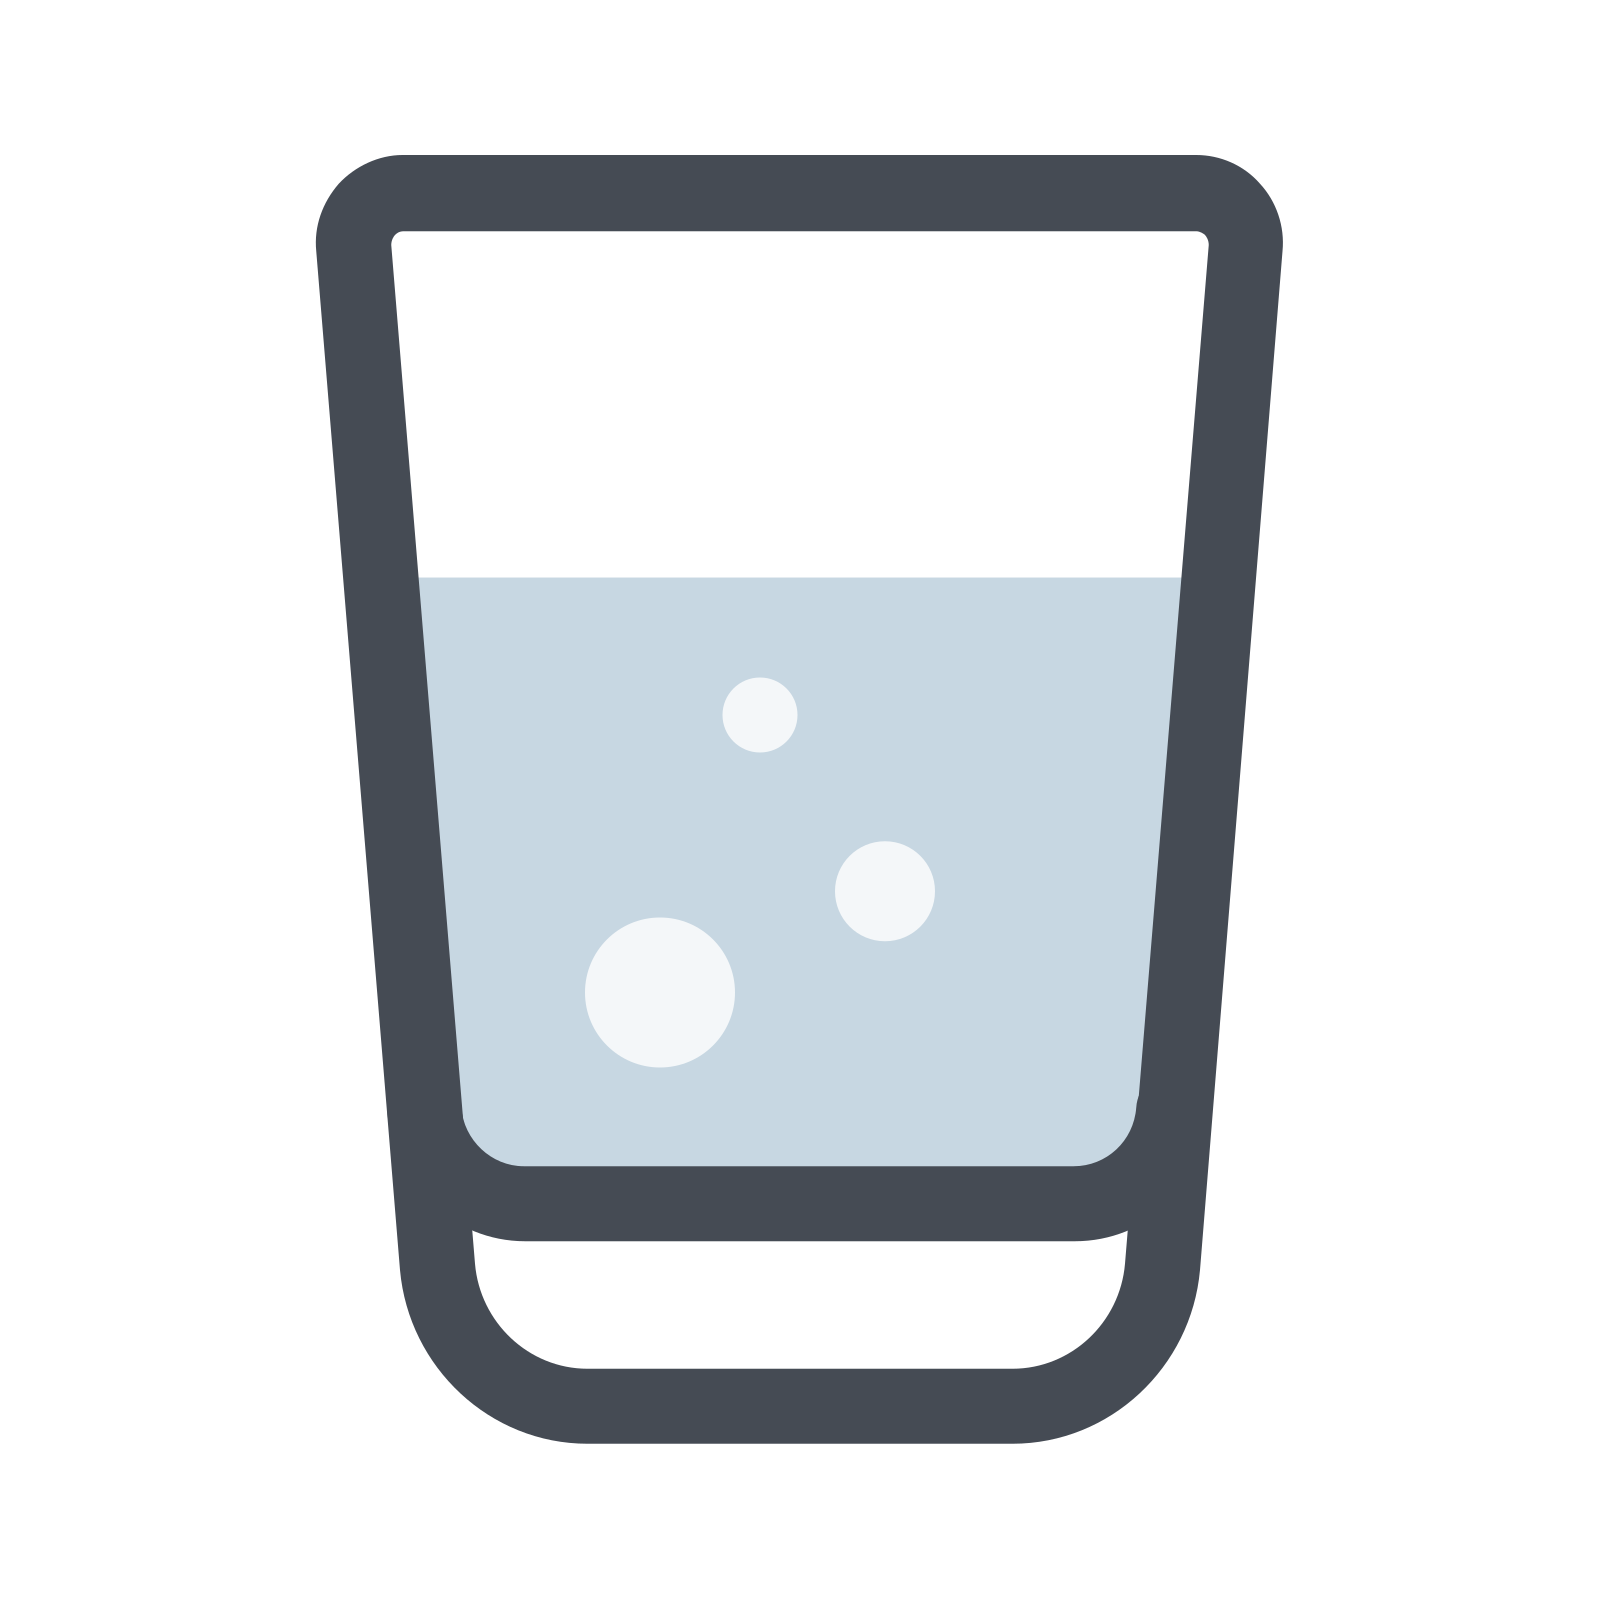 water glass icon download png and vector 26975